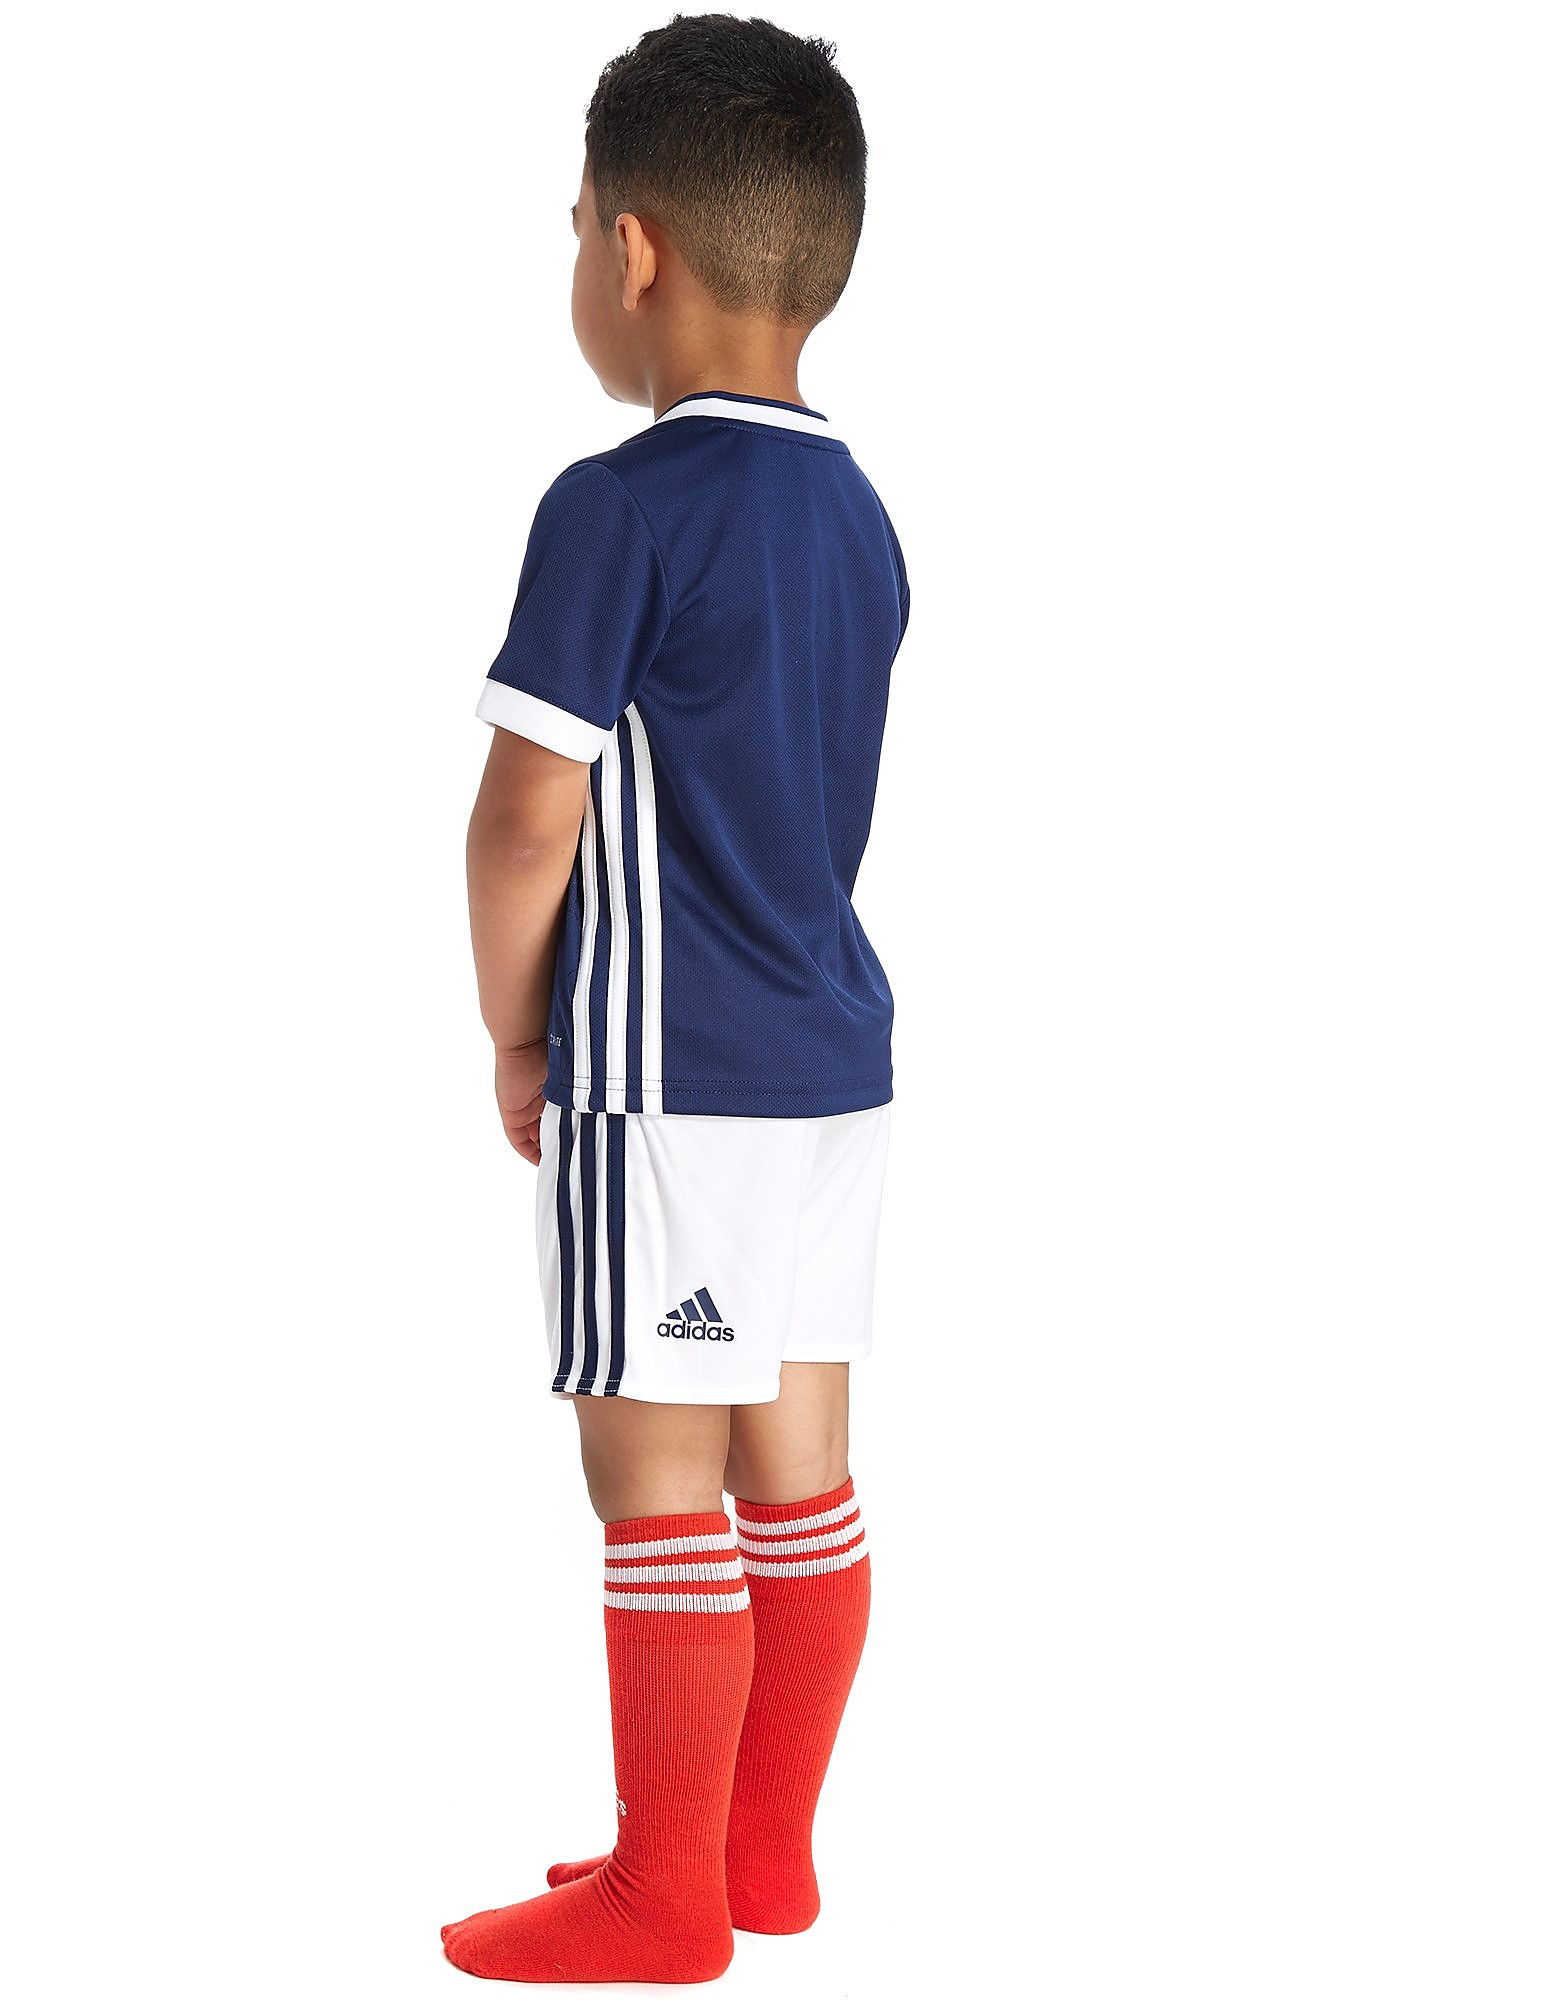 adidas Scotland 2017/18 Home Kit Children PRE ORDER